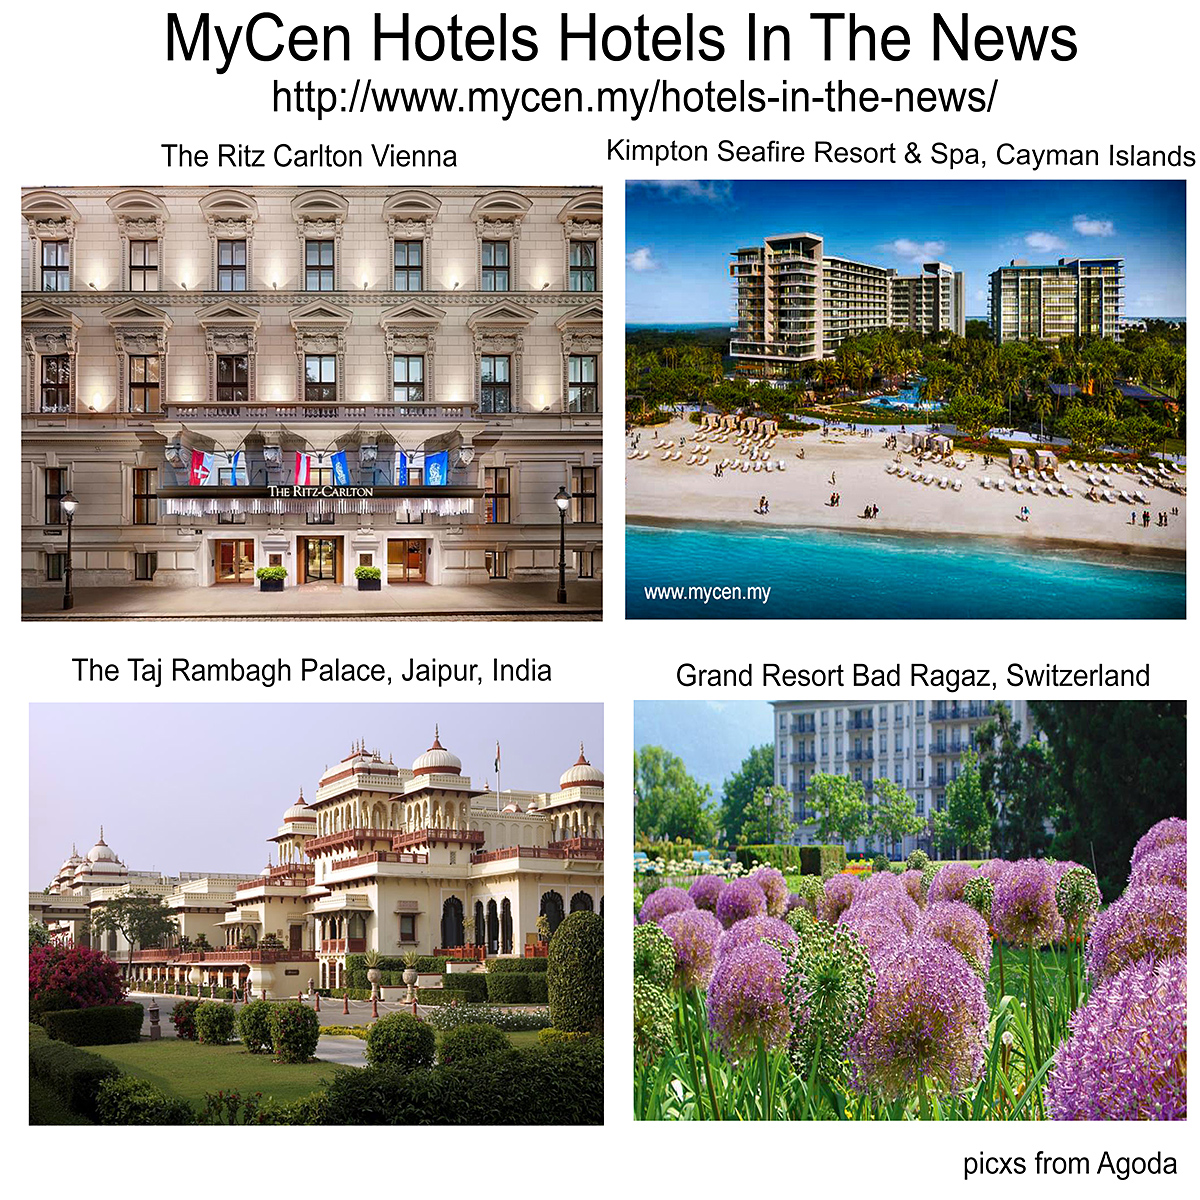 About Hotels In The News